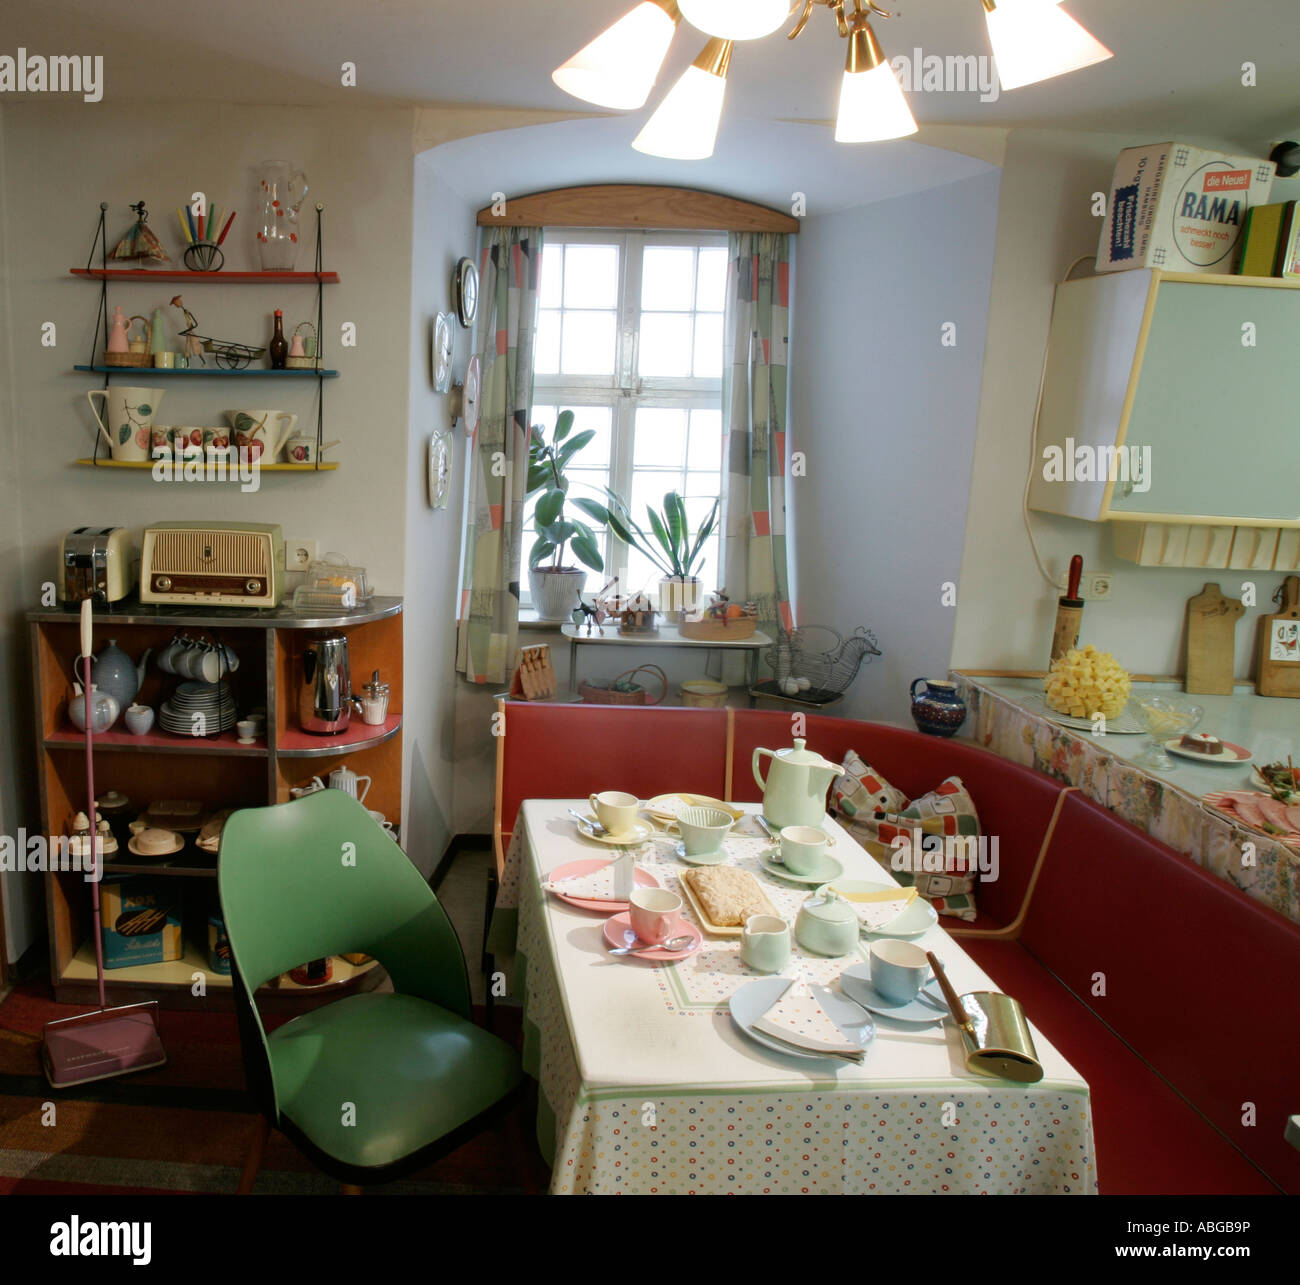 Zimmer Museum Stock Photos & Zimmer Museum Stock Images - Alamy